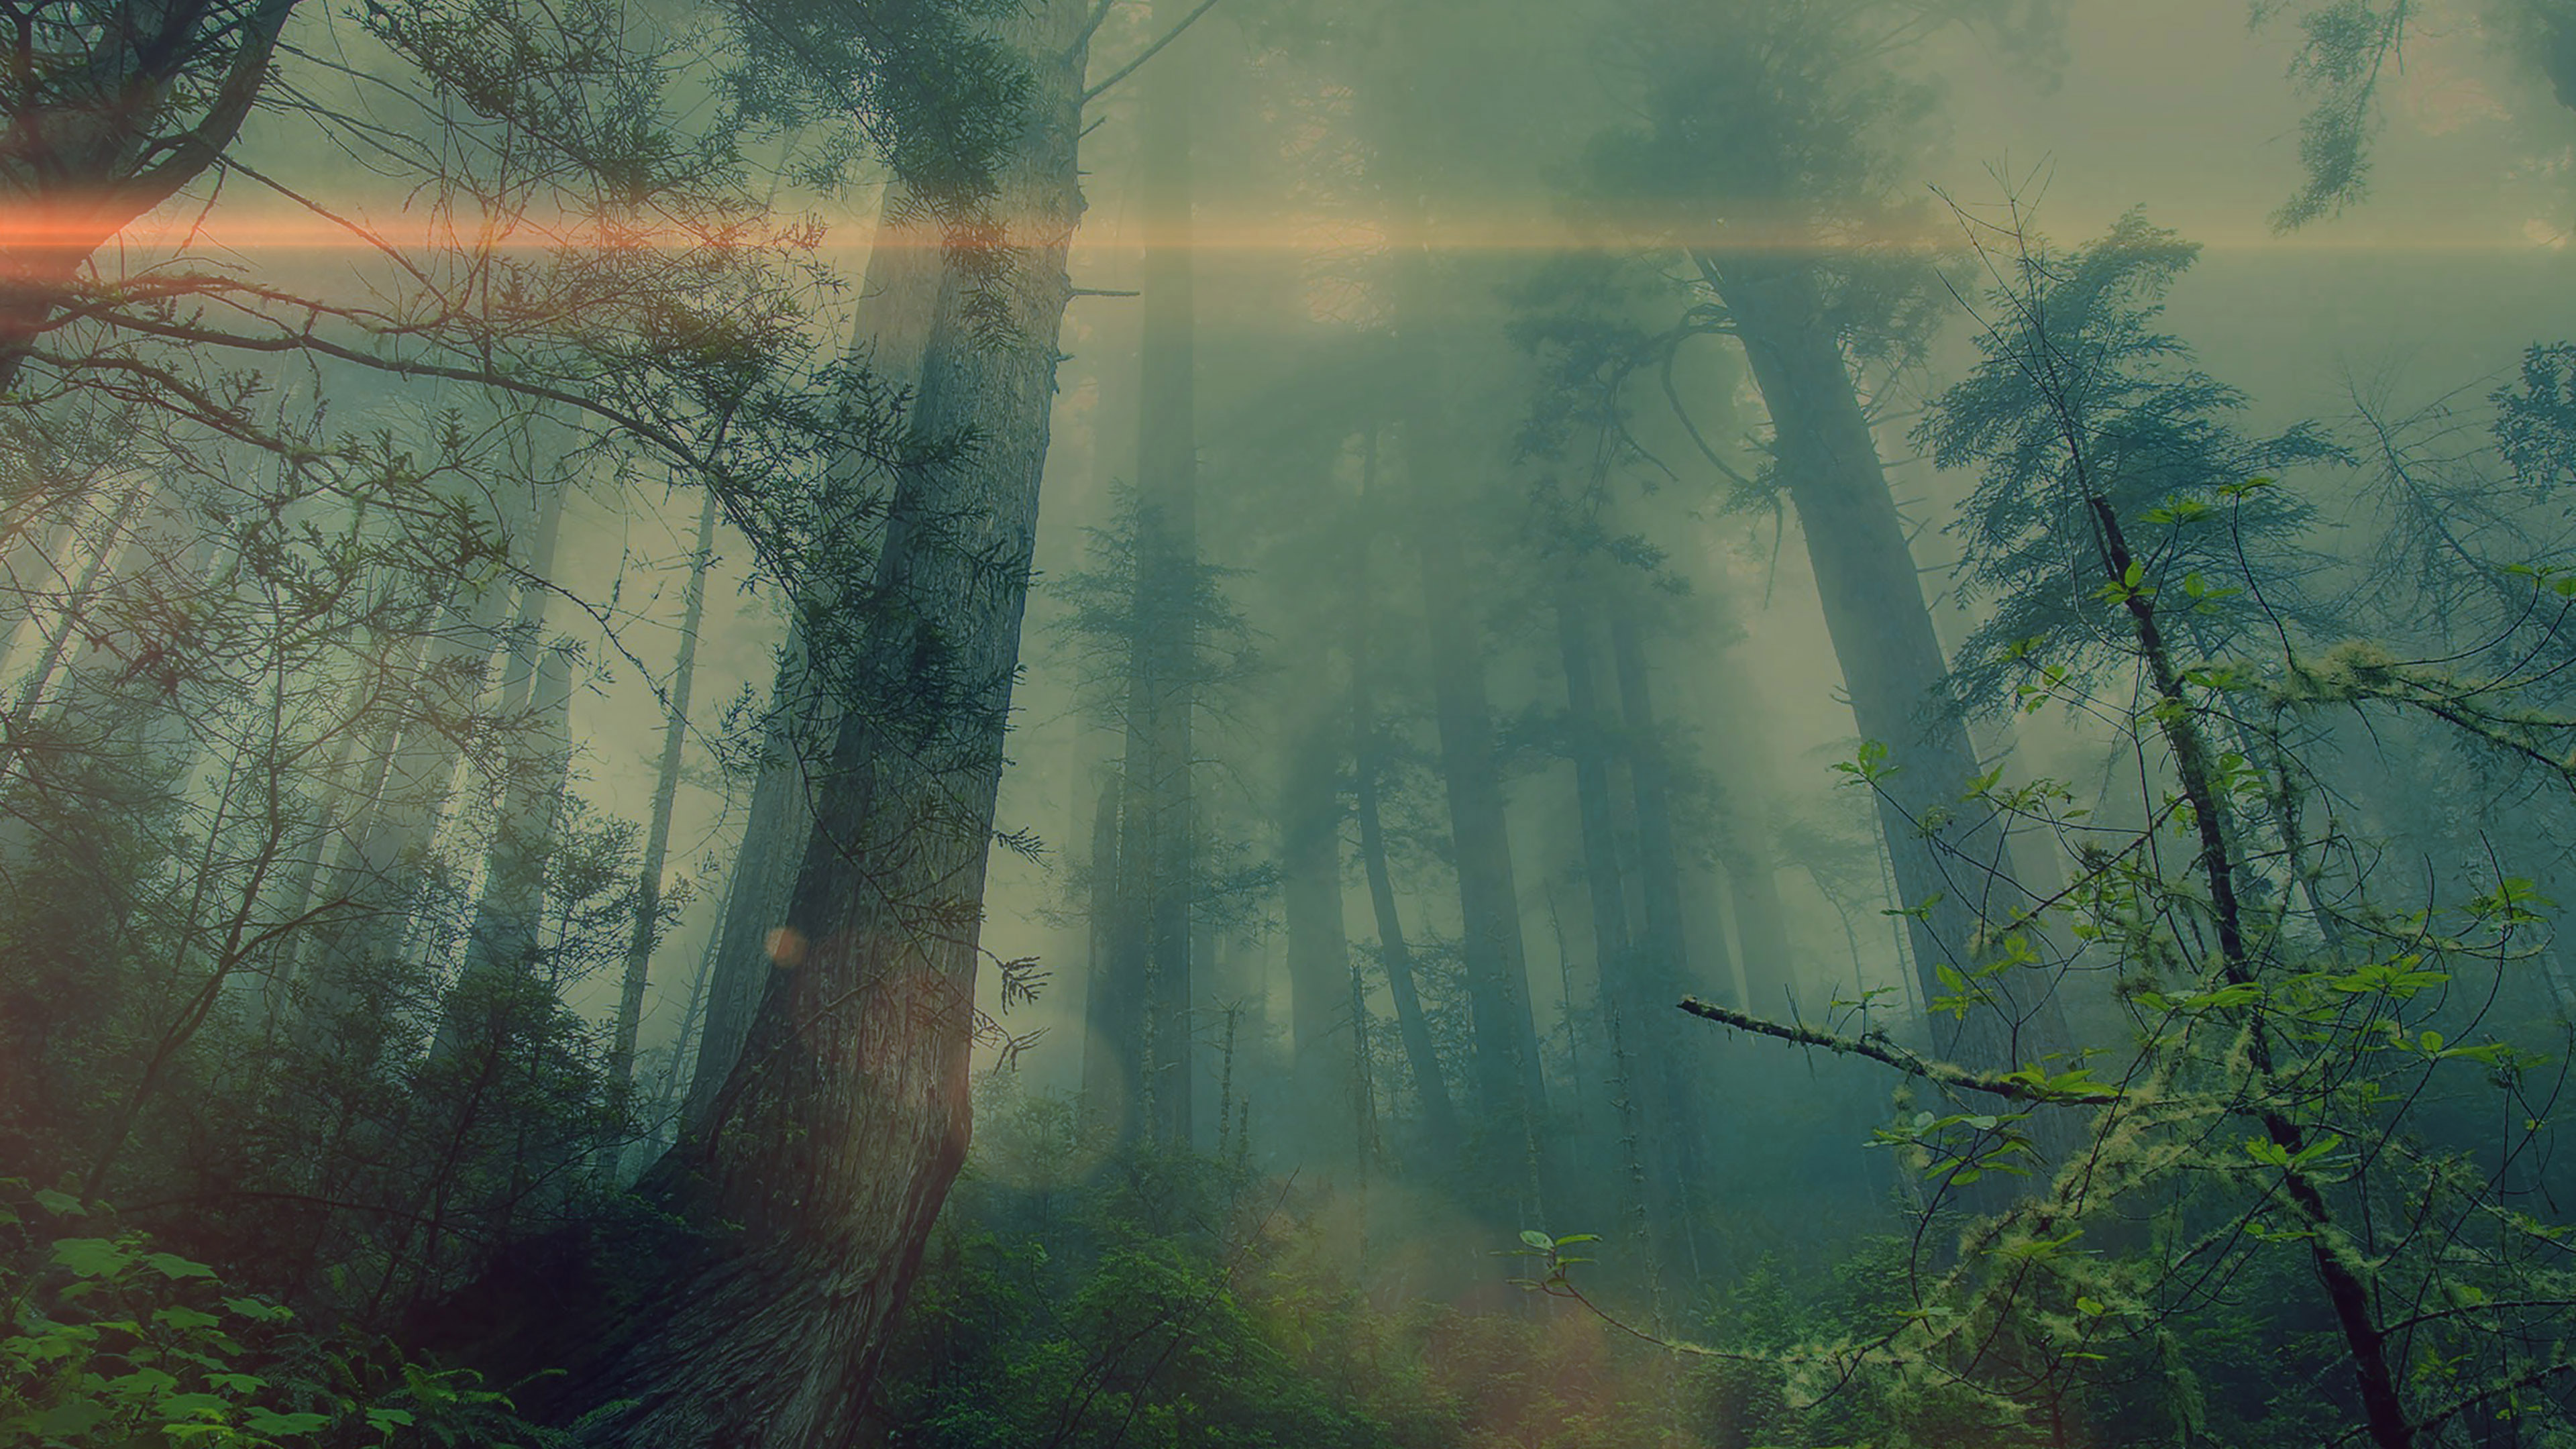 wallpaper for desktop, laptop | mn32-forest-wood-fog-flare ...